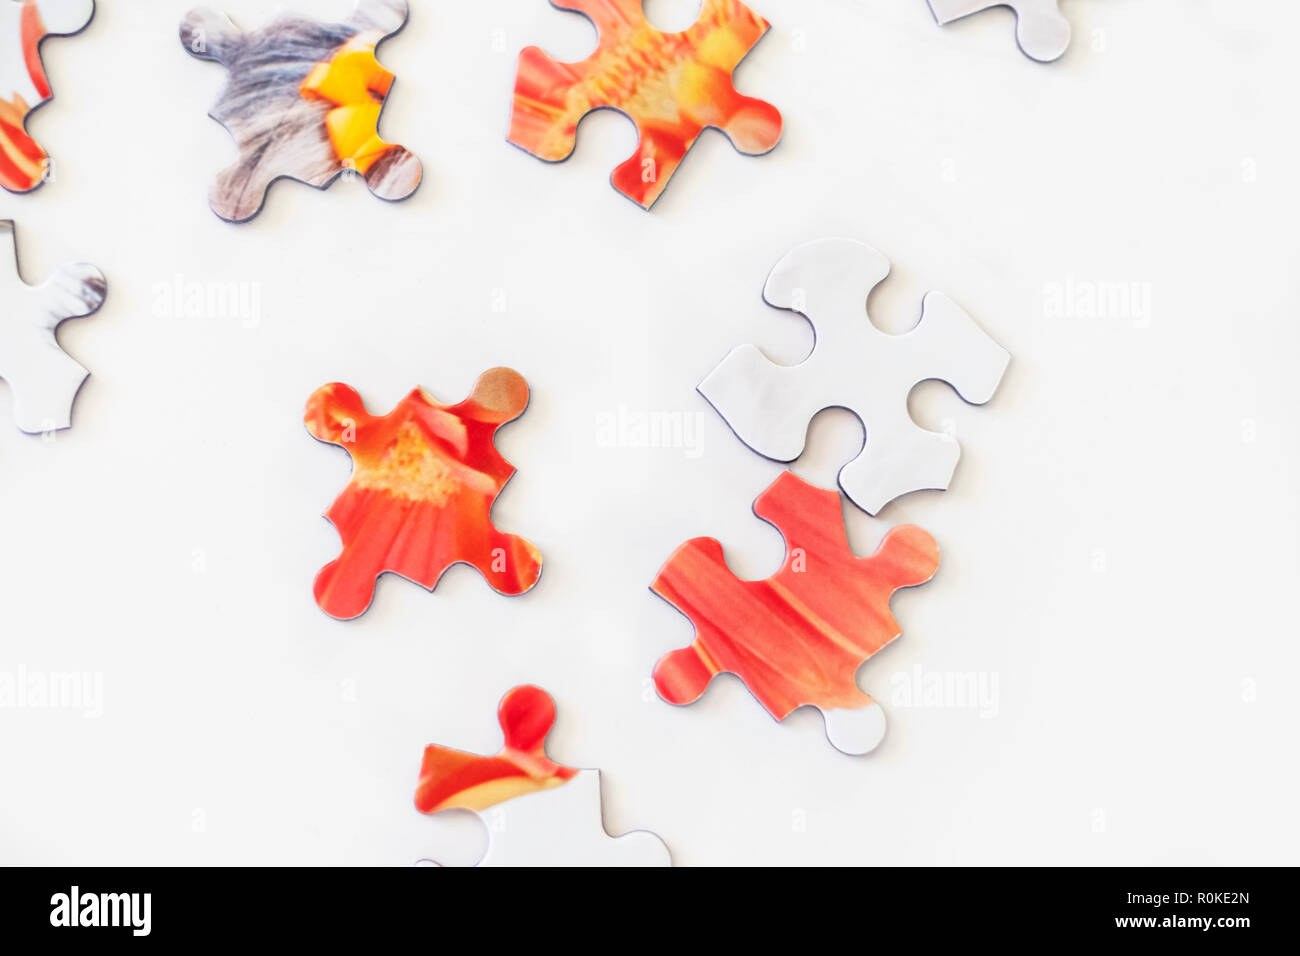 Puzzle pieces on white background. Representing solving problems, challenge, challenges, figuring out. - Stock Image